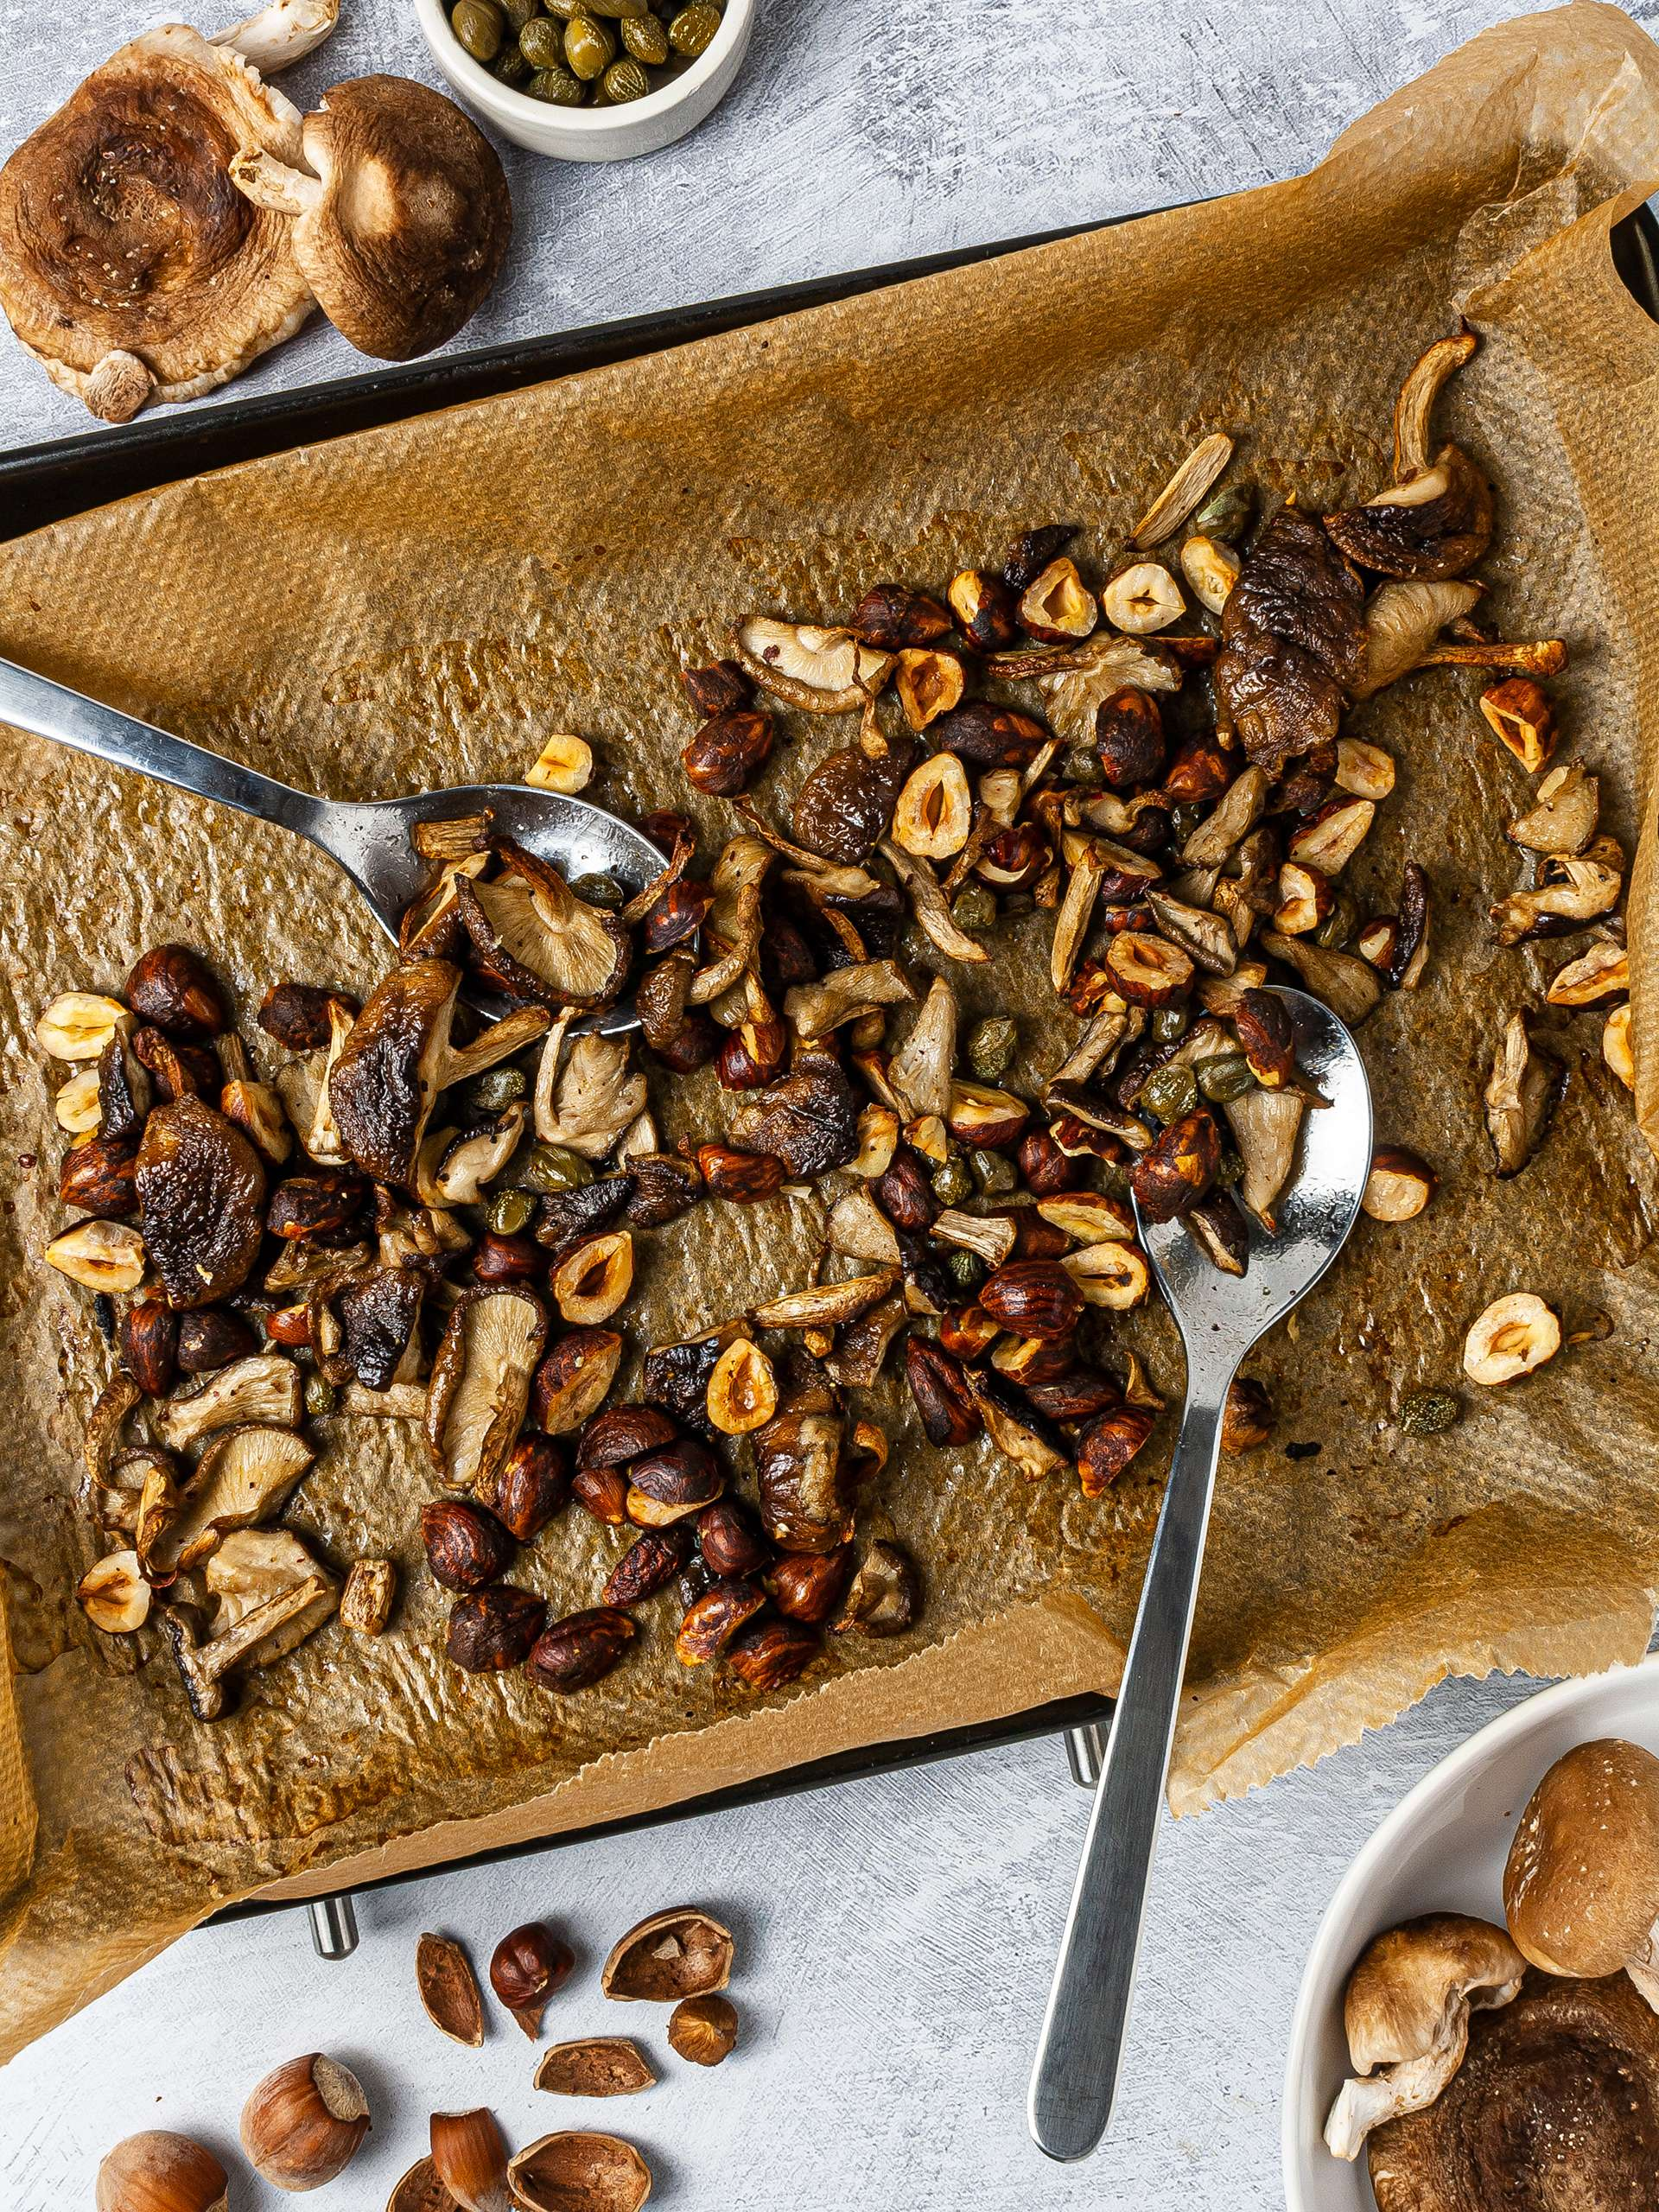 Roasted shiitake mushrooms with hazelnuts and capes over a baking tray